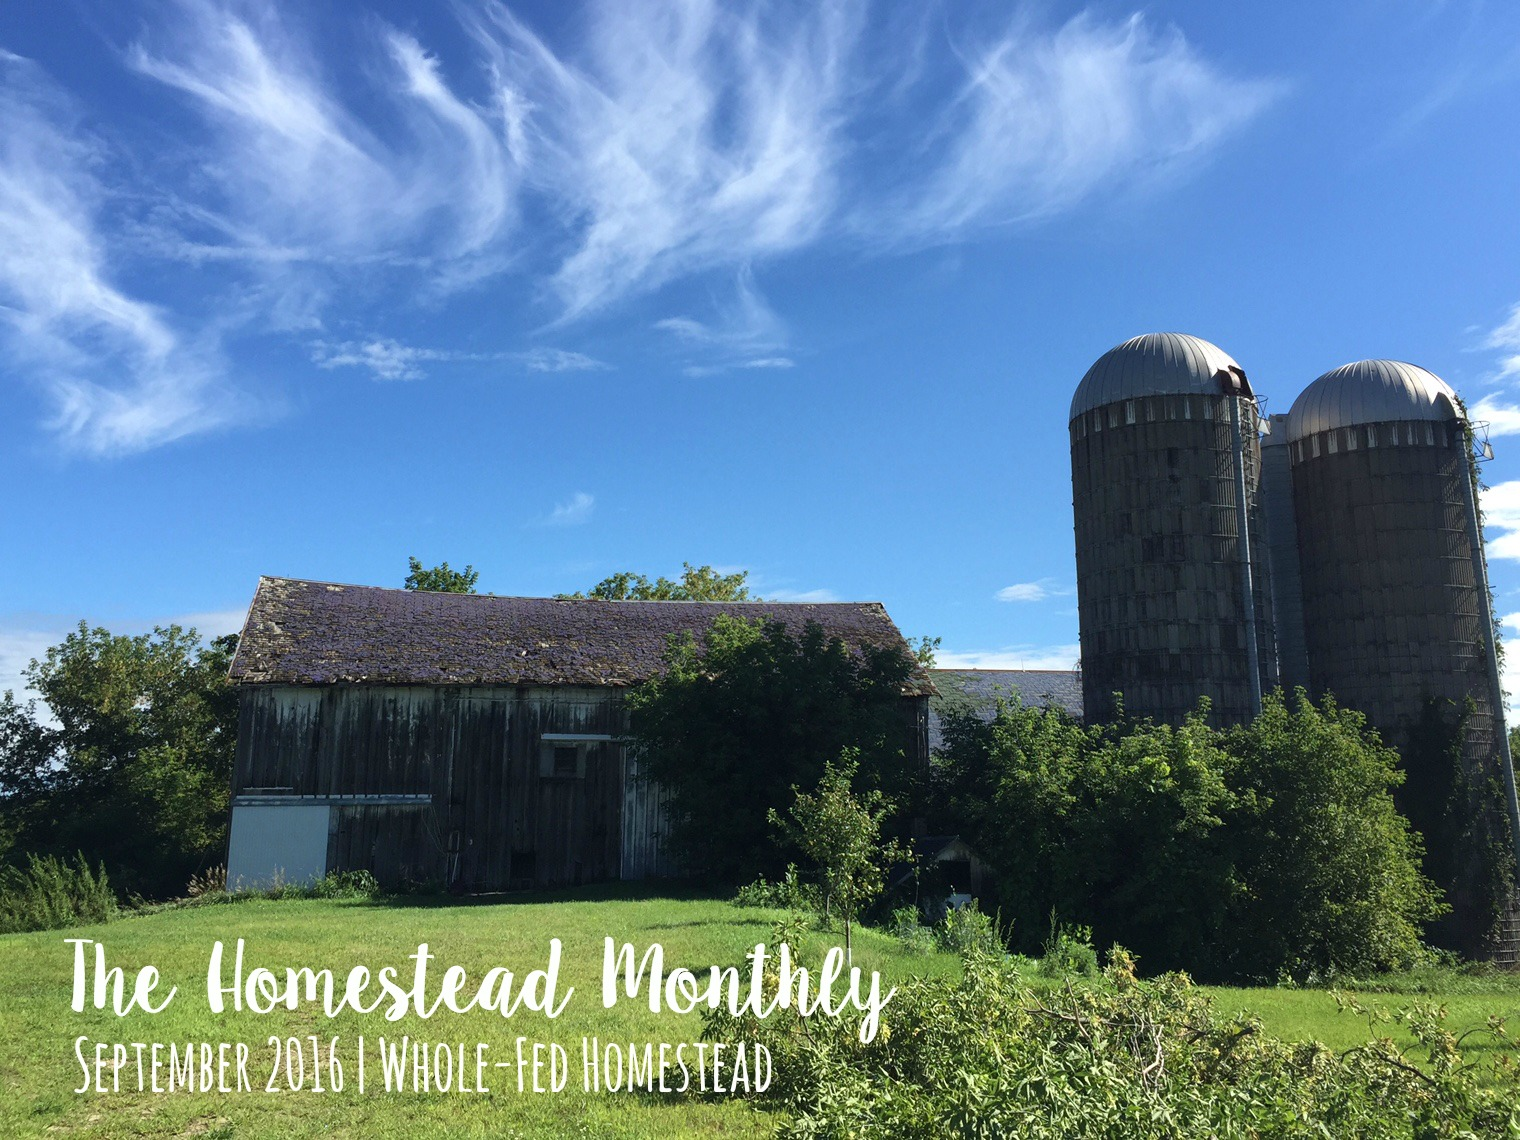 homestead-monthly-september-2016